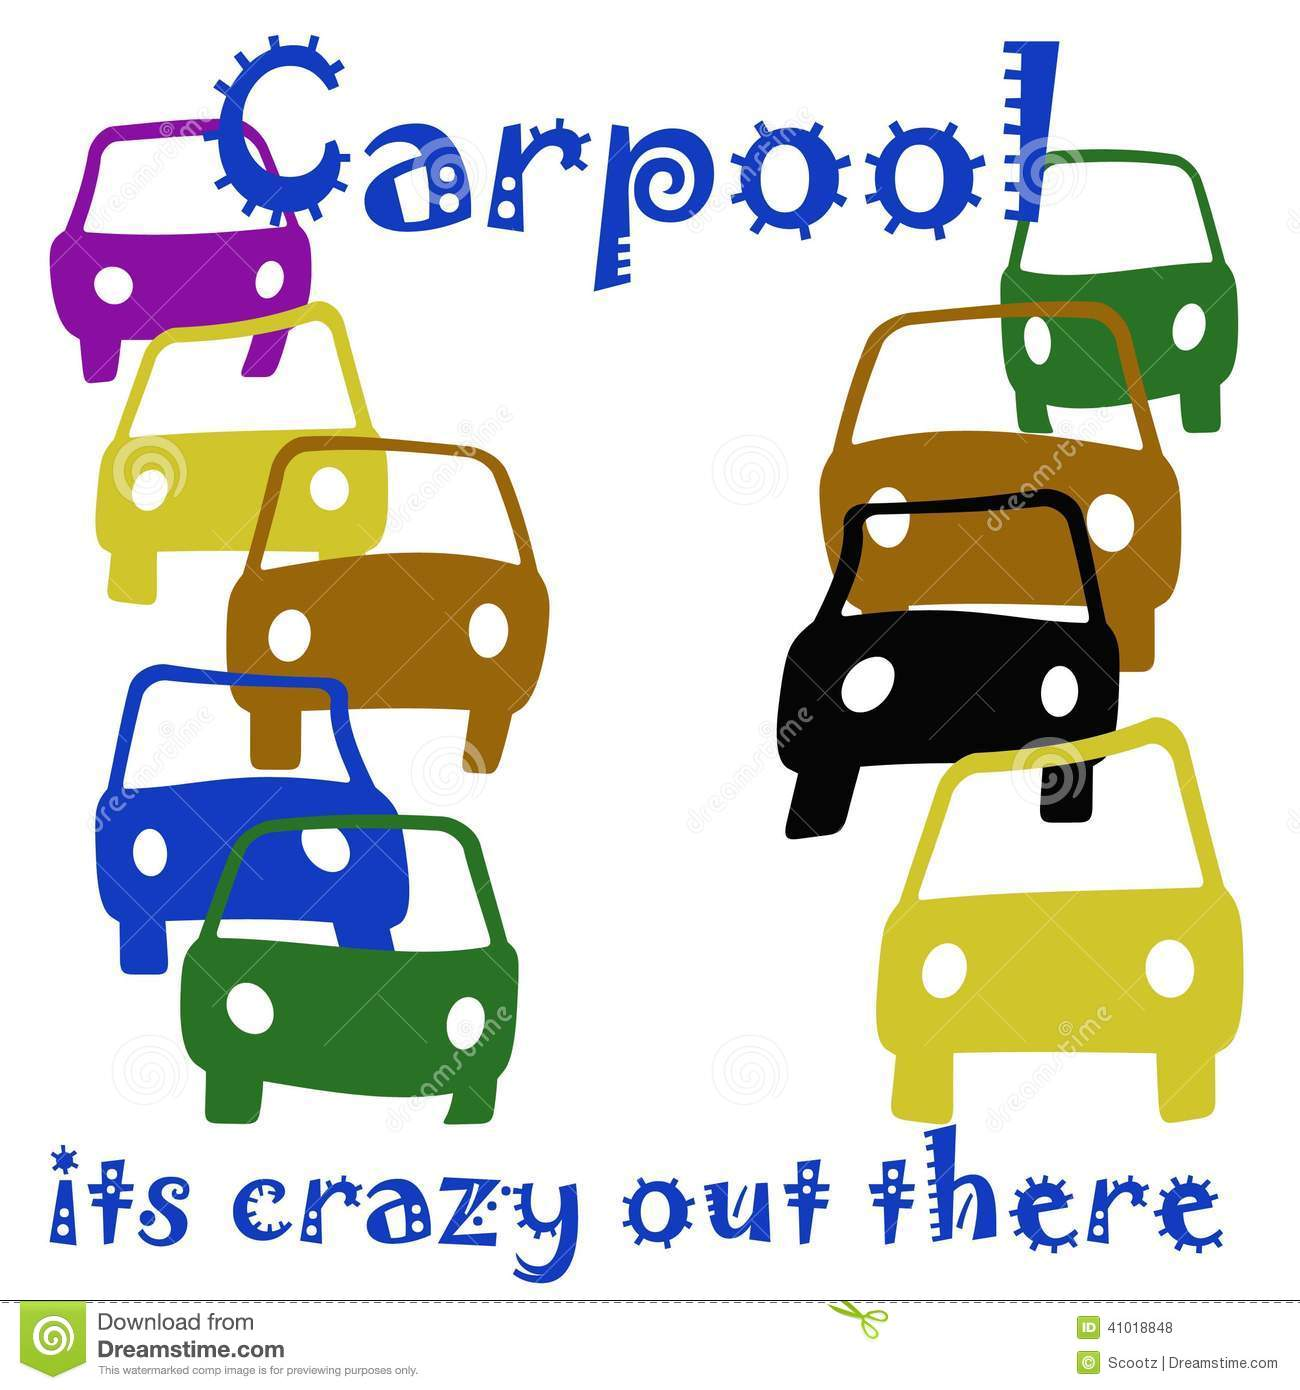 School Carpool Clipart Carpool crazy .